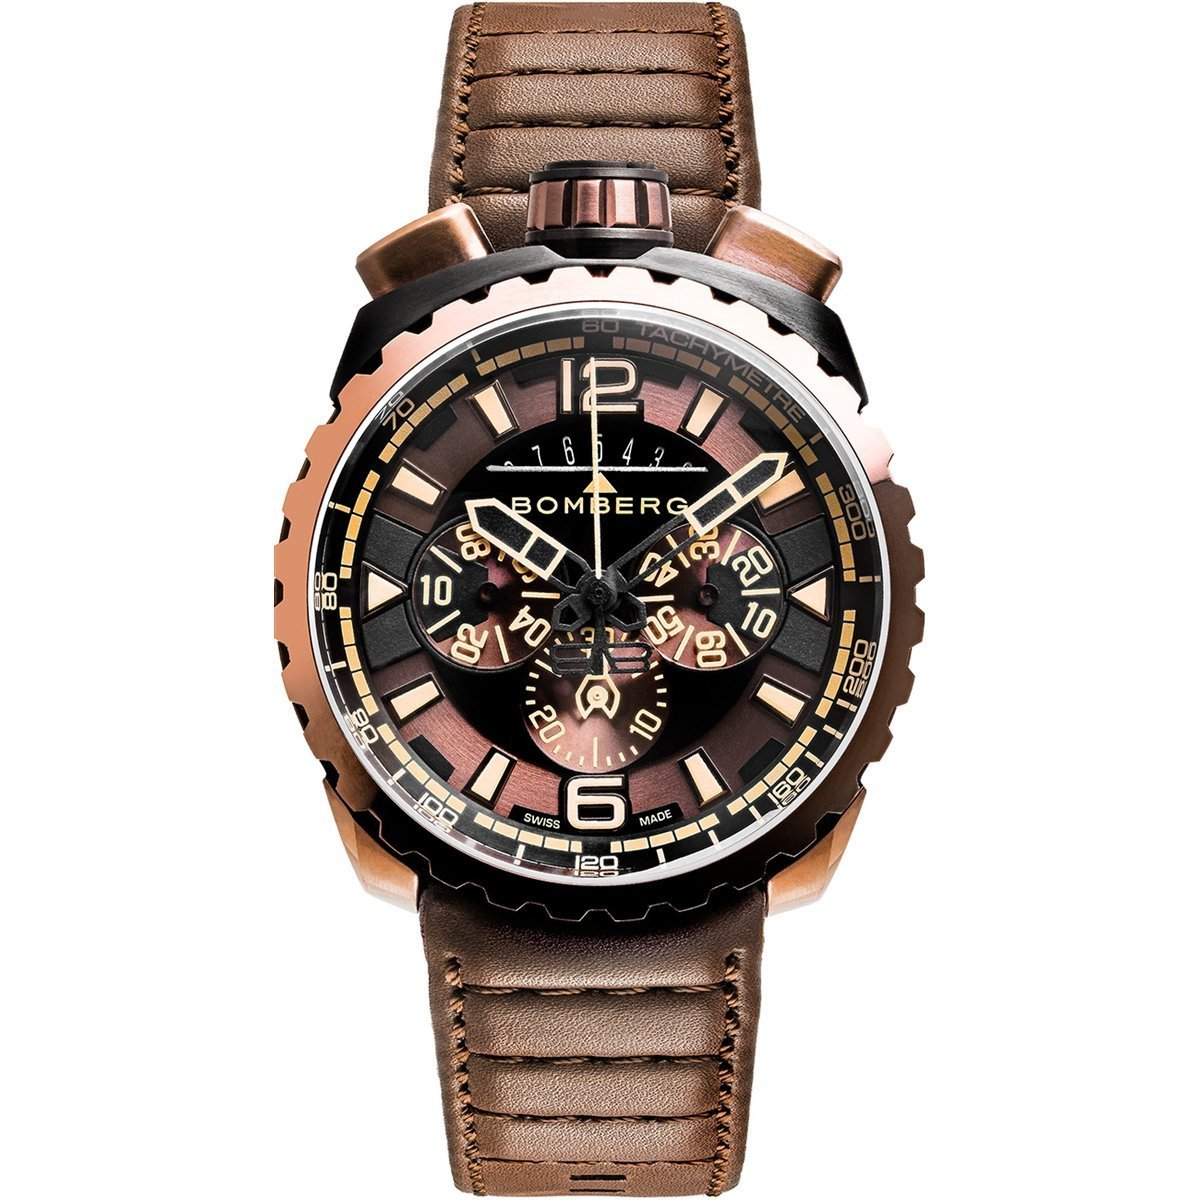 Bomberg BOLT-68 Chronograph Brown & Black PVD